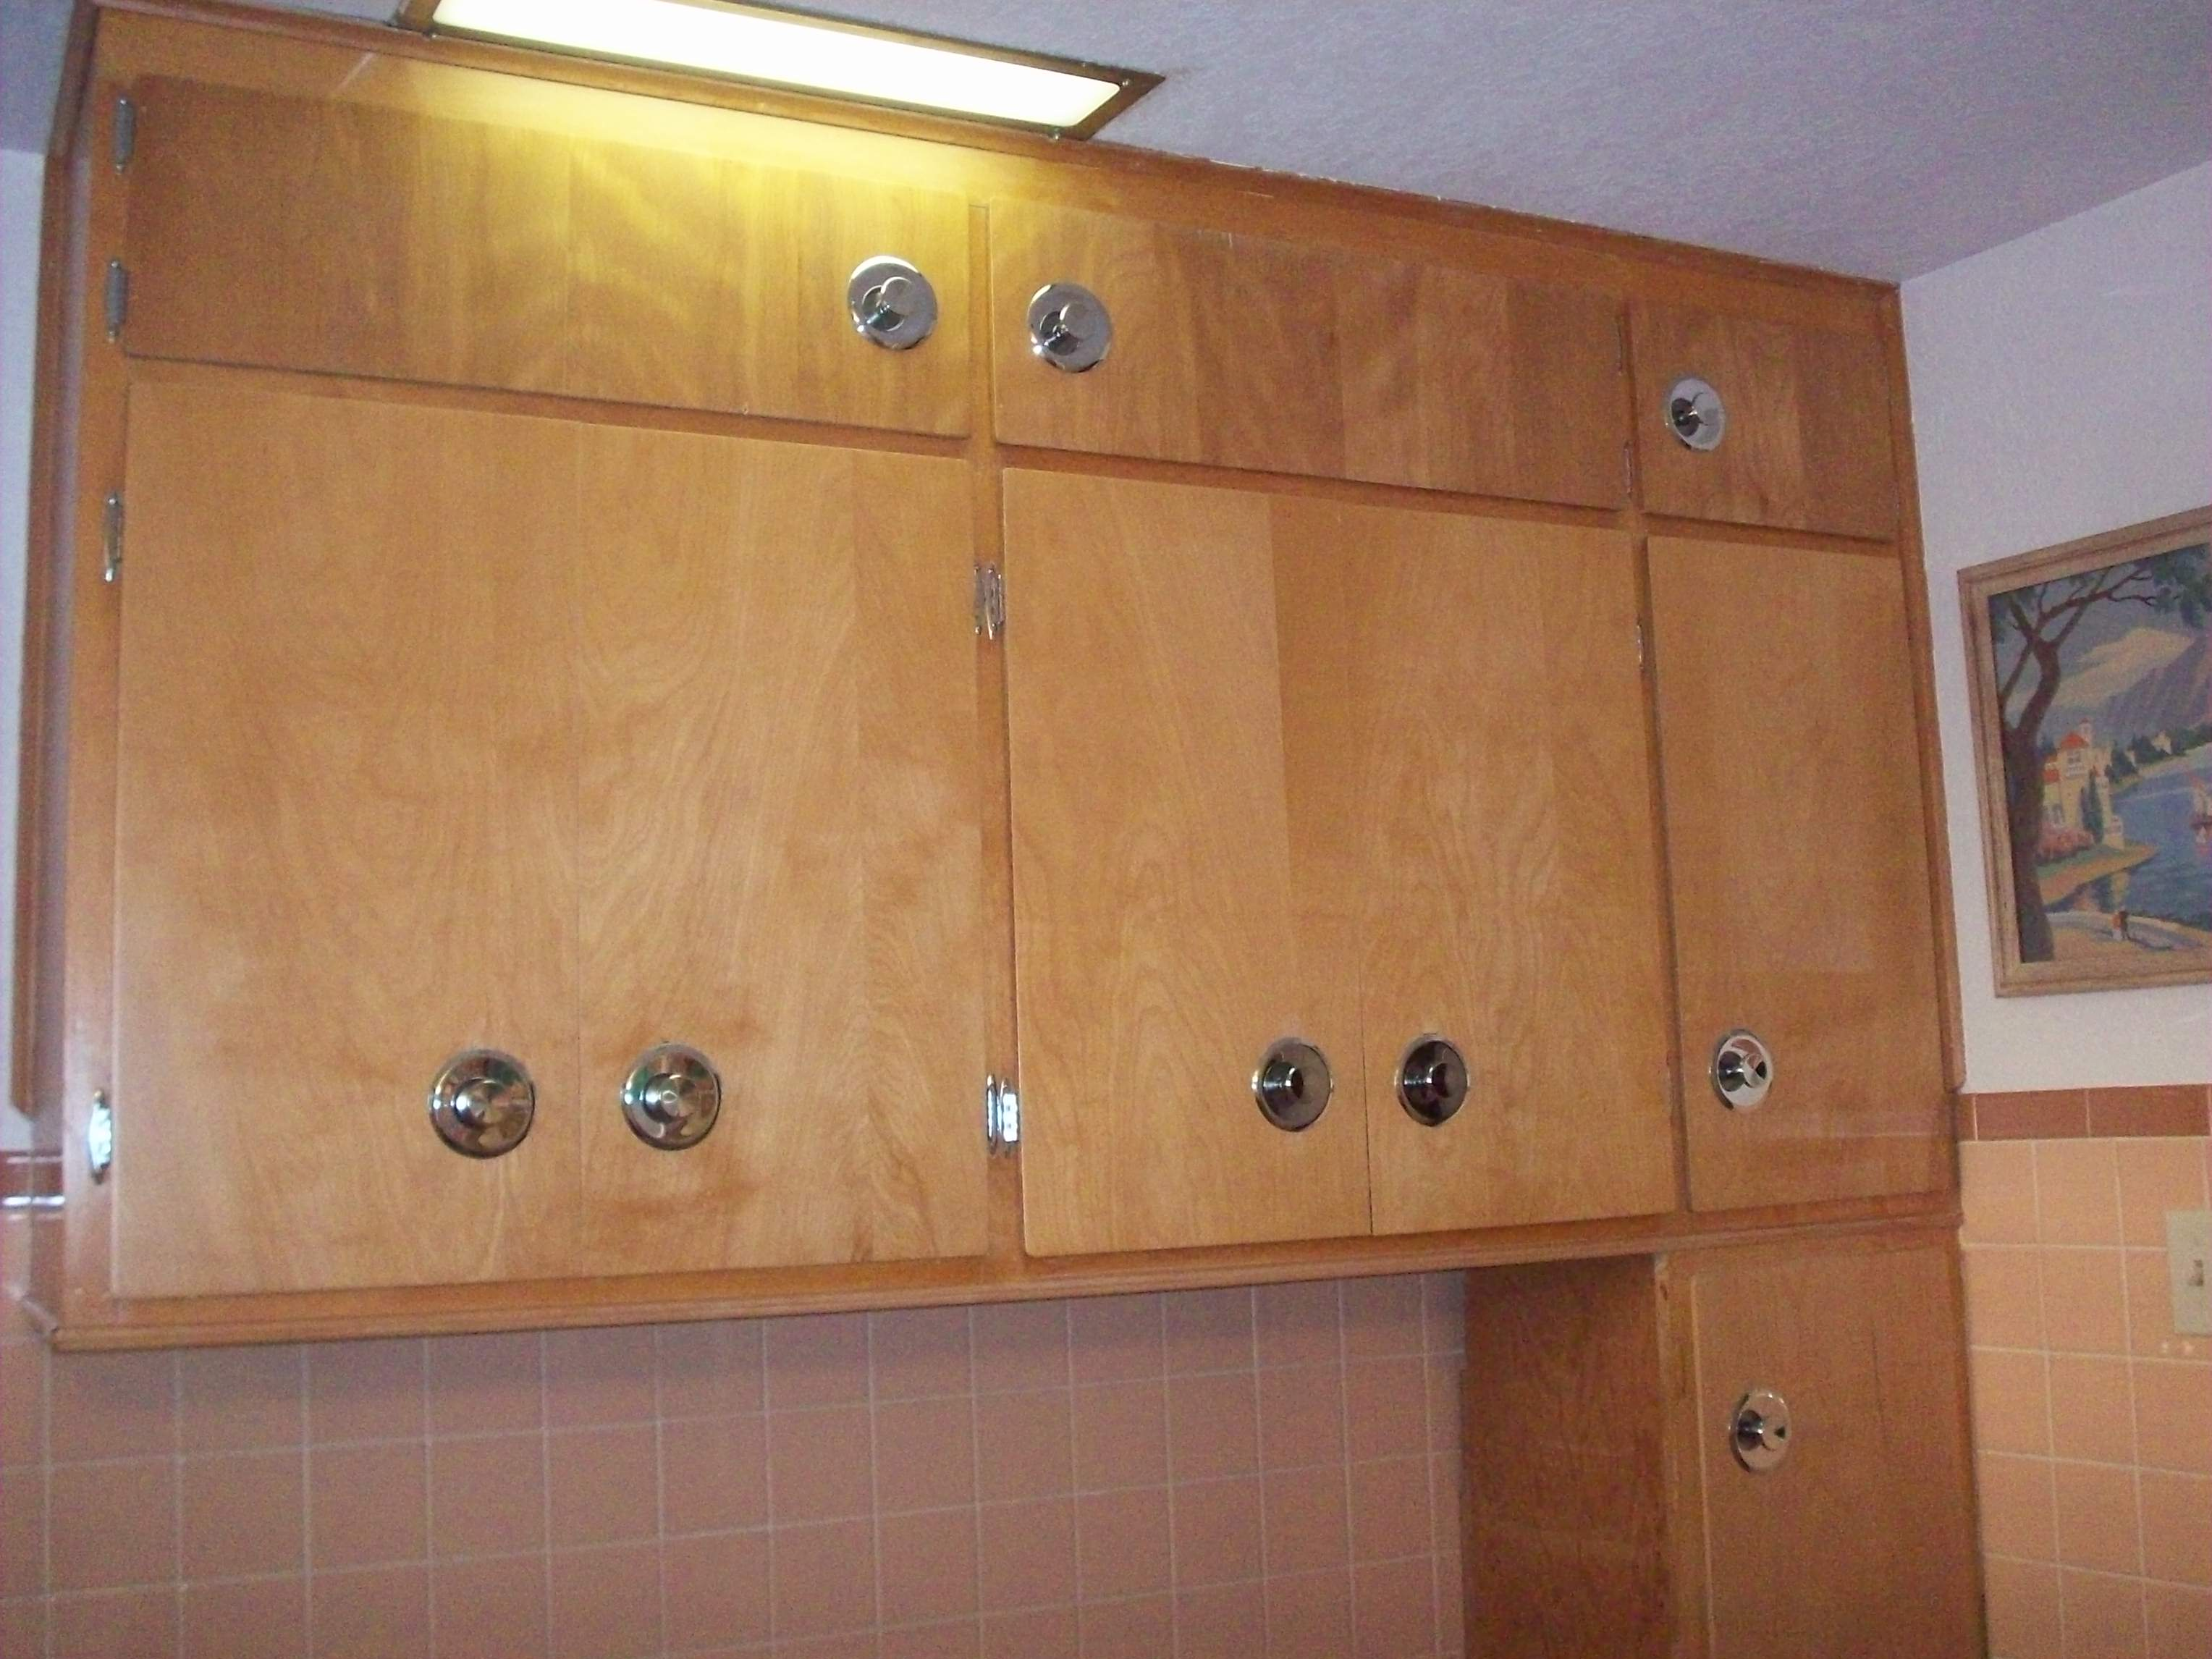 century kitchen cabinets outdoor ideas on a budget june 2015 midcenturythriftygal